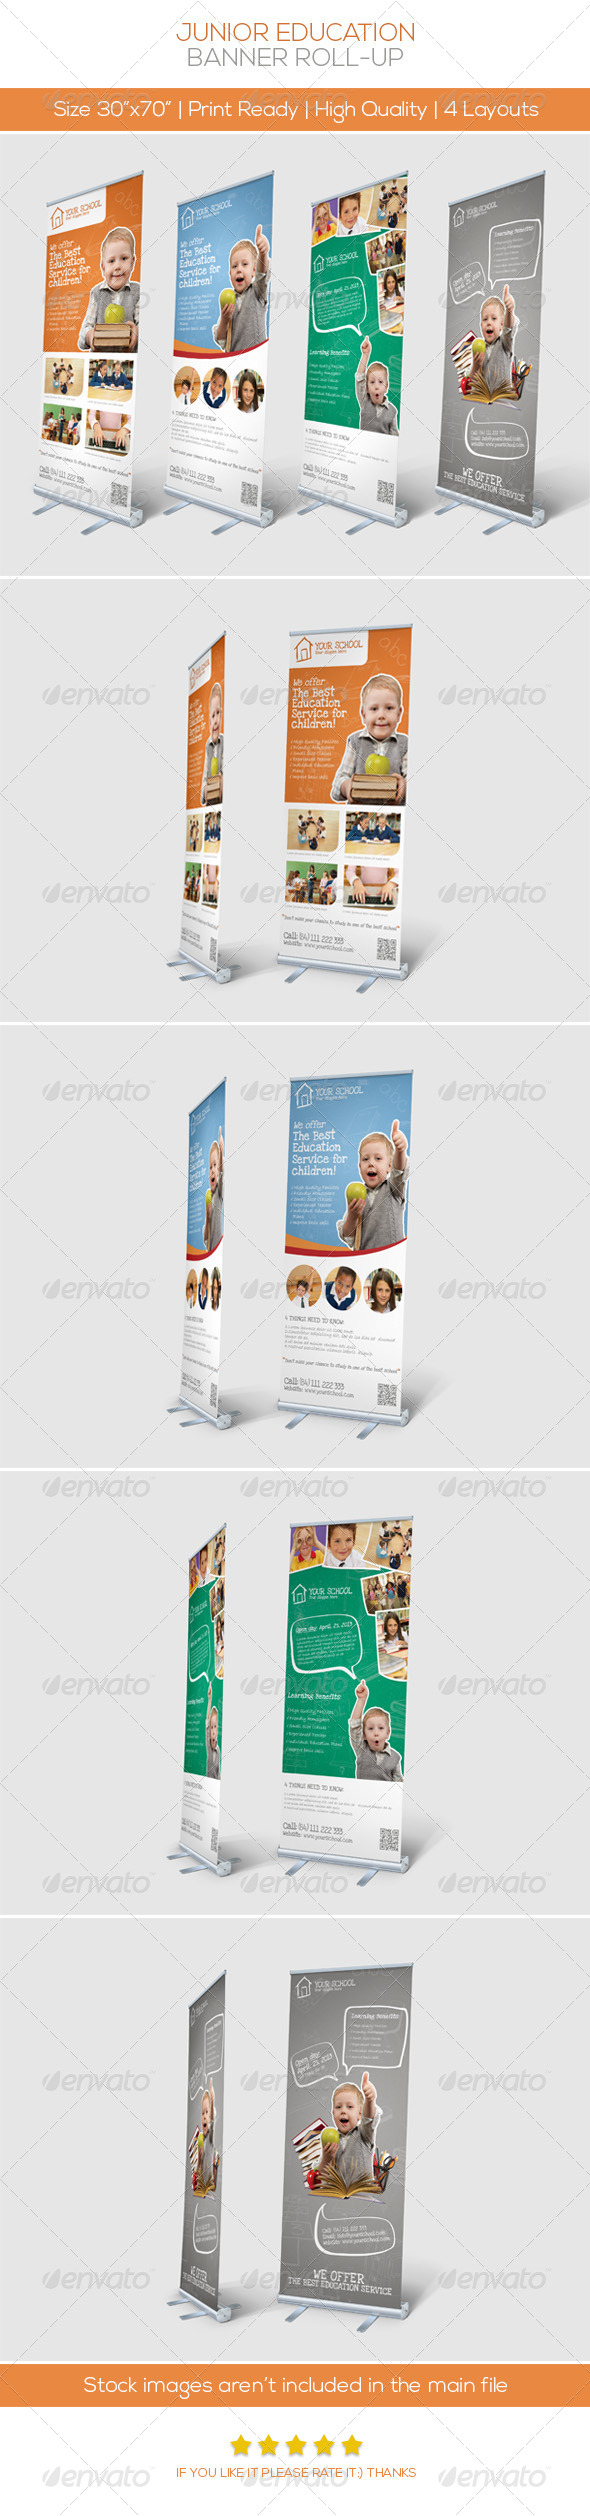 GraphicRiver Premium Junior Education Banner Roll-up 4910094